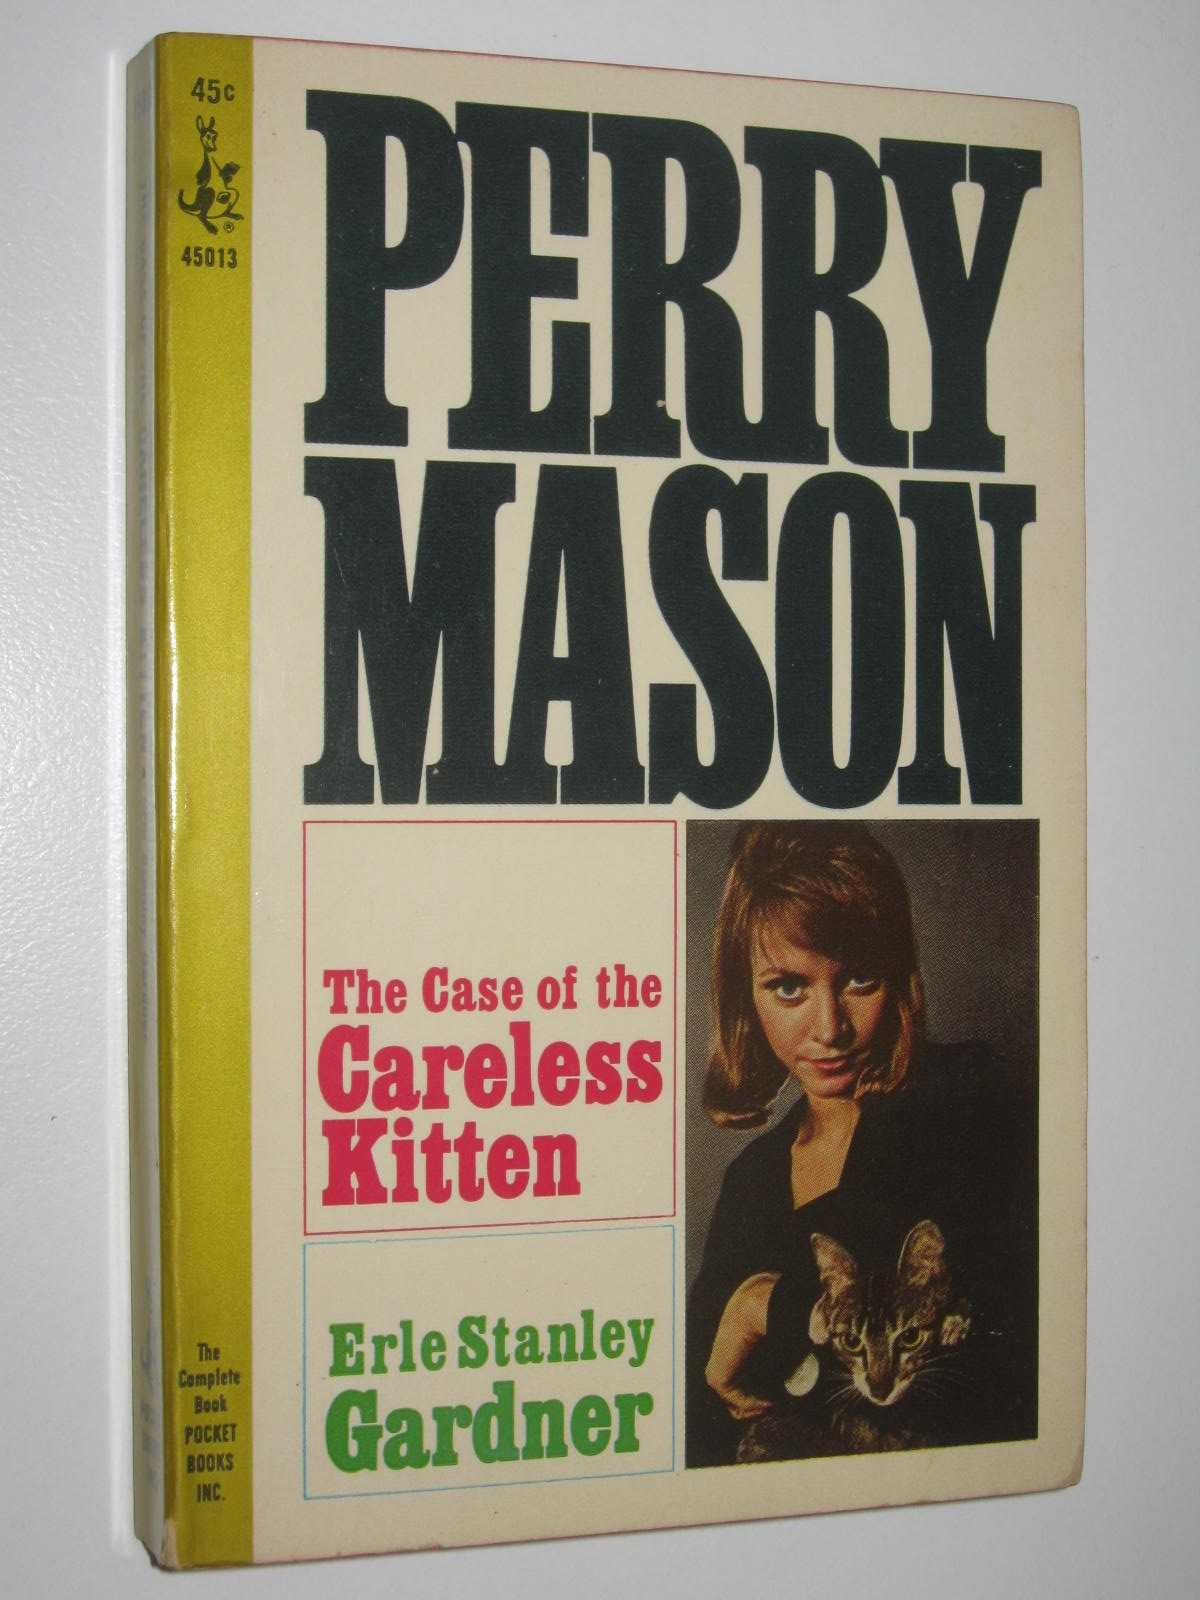 Image for The Case of the Careless Kitten - Perry Mason Series